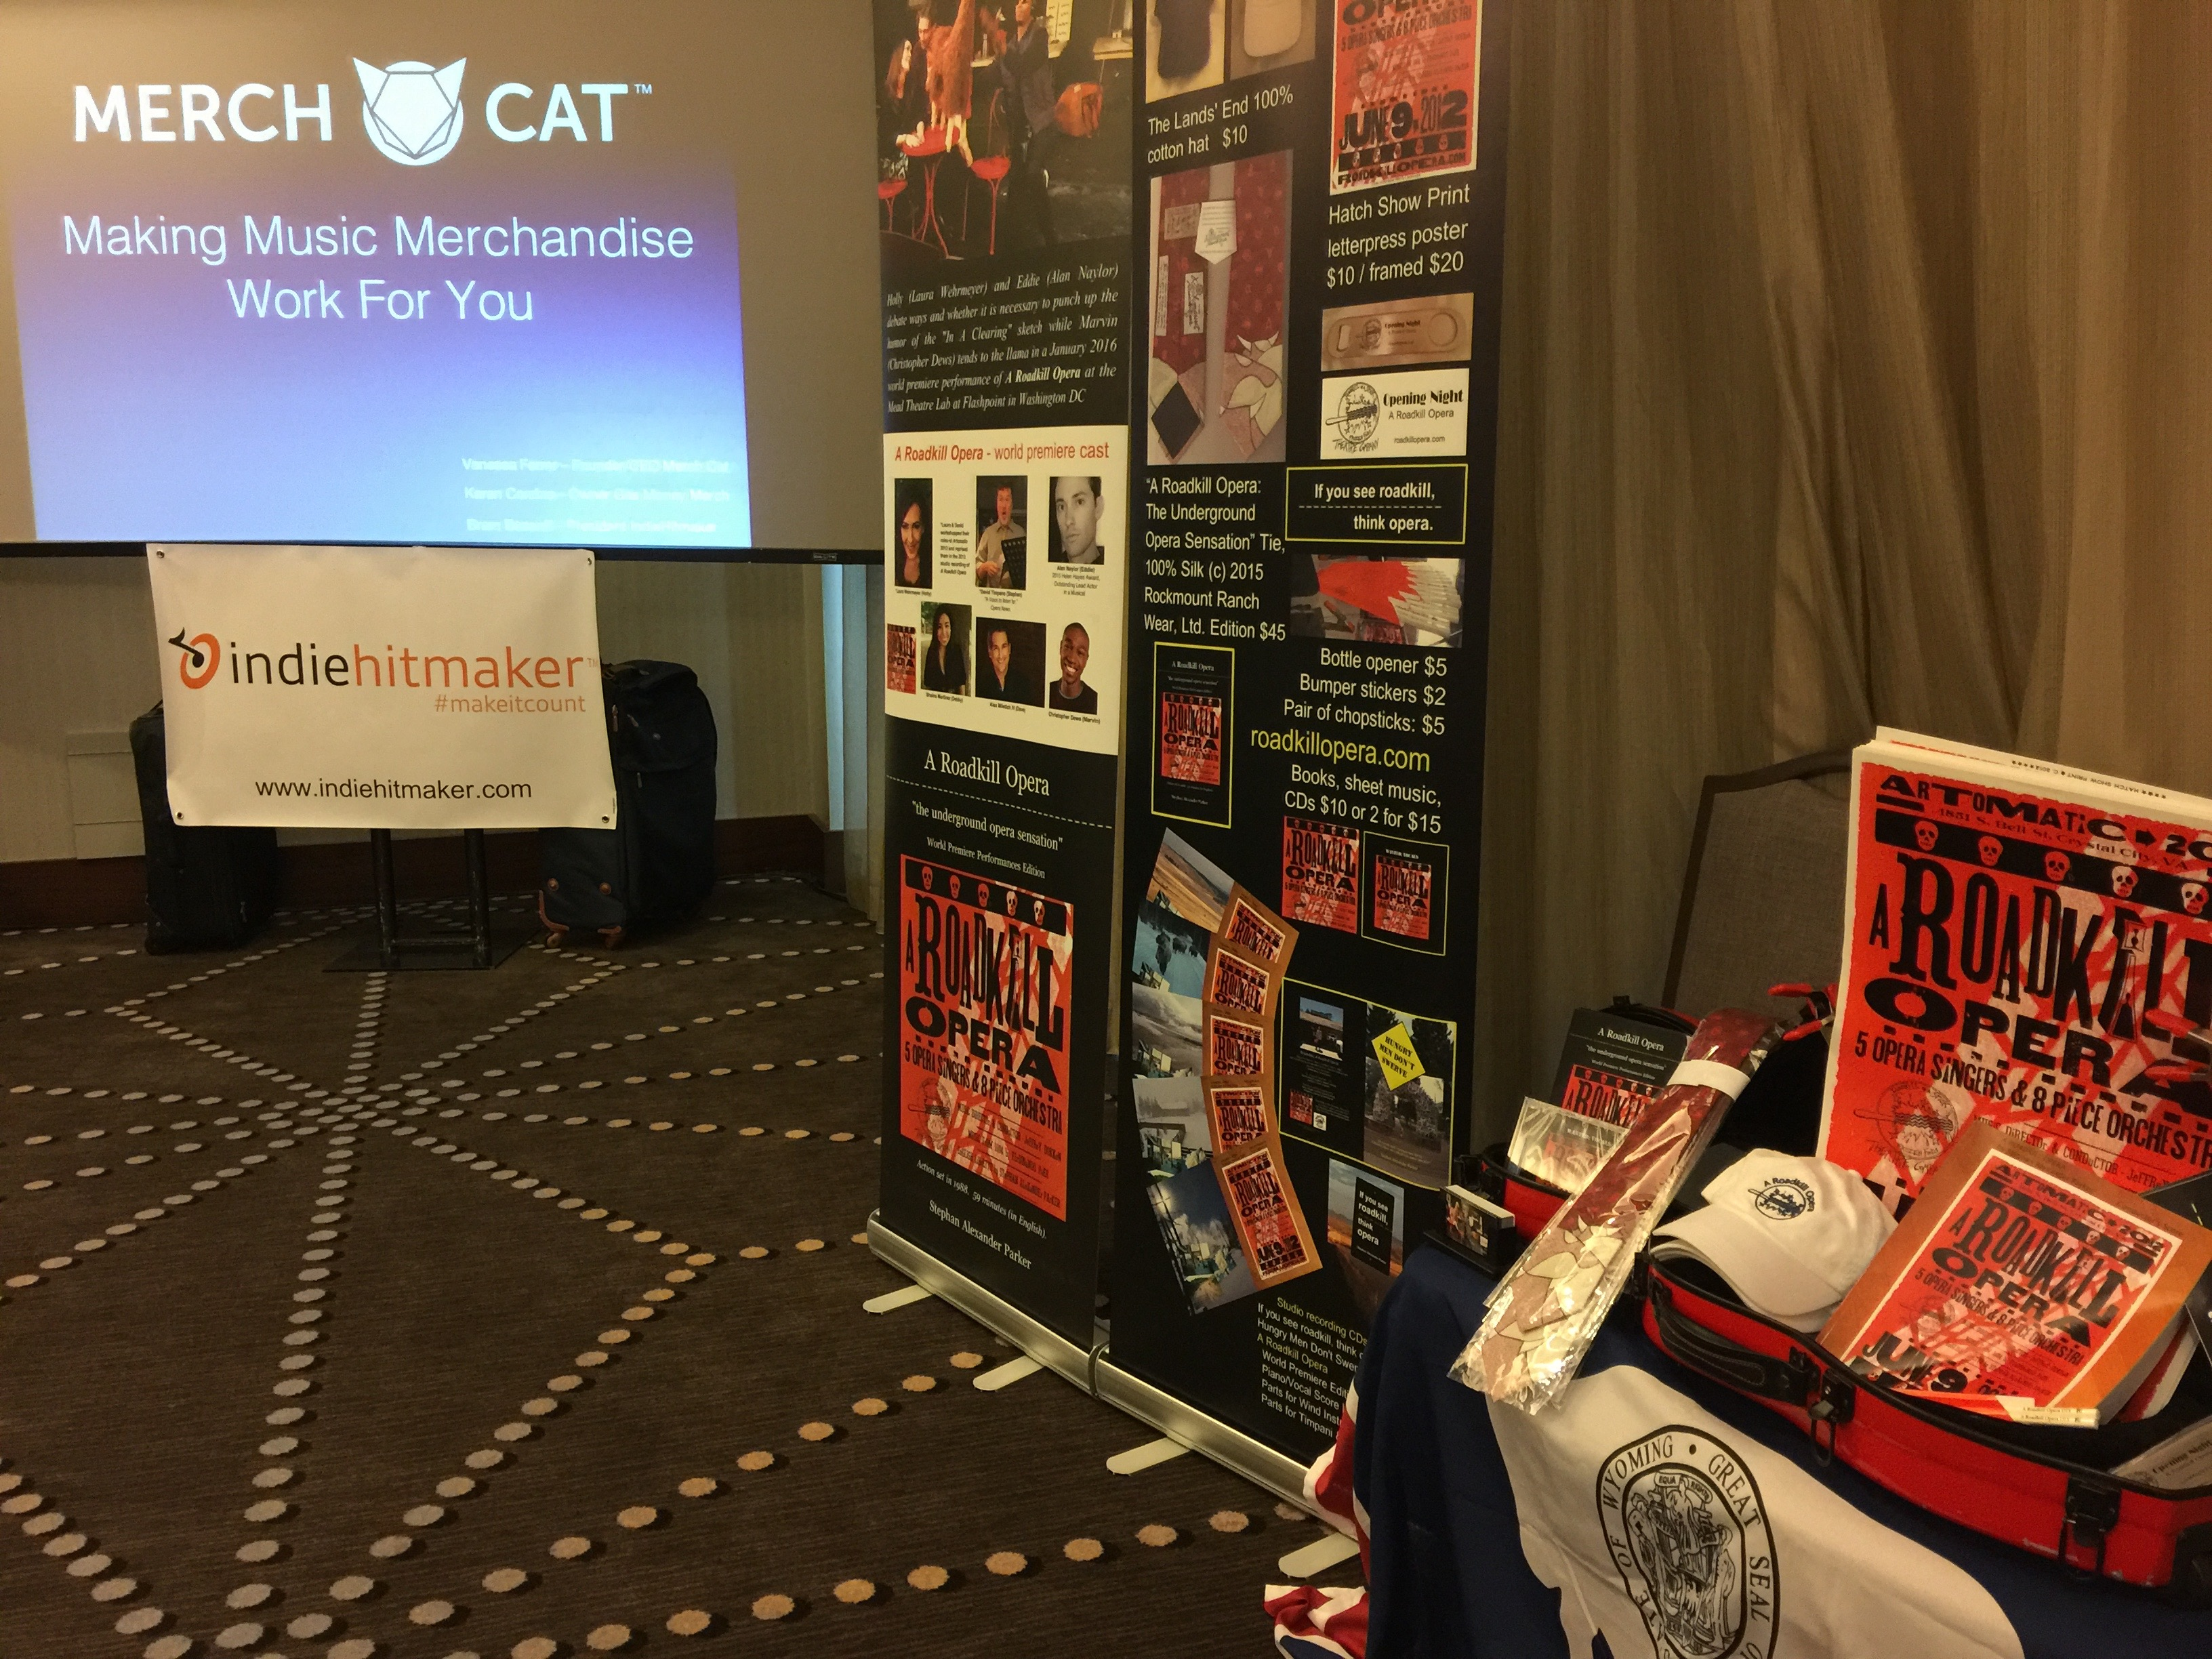 Photo of A Roadkill Opera's merch display in the Merch Cat sessions at CD Baby's DIY Musicians Conference 2017